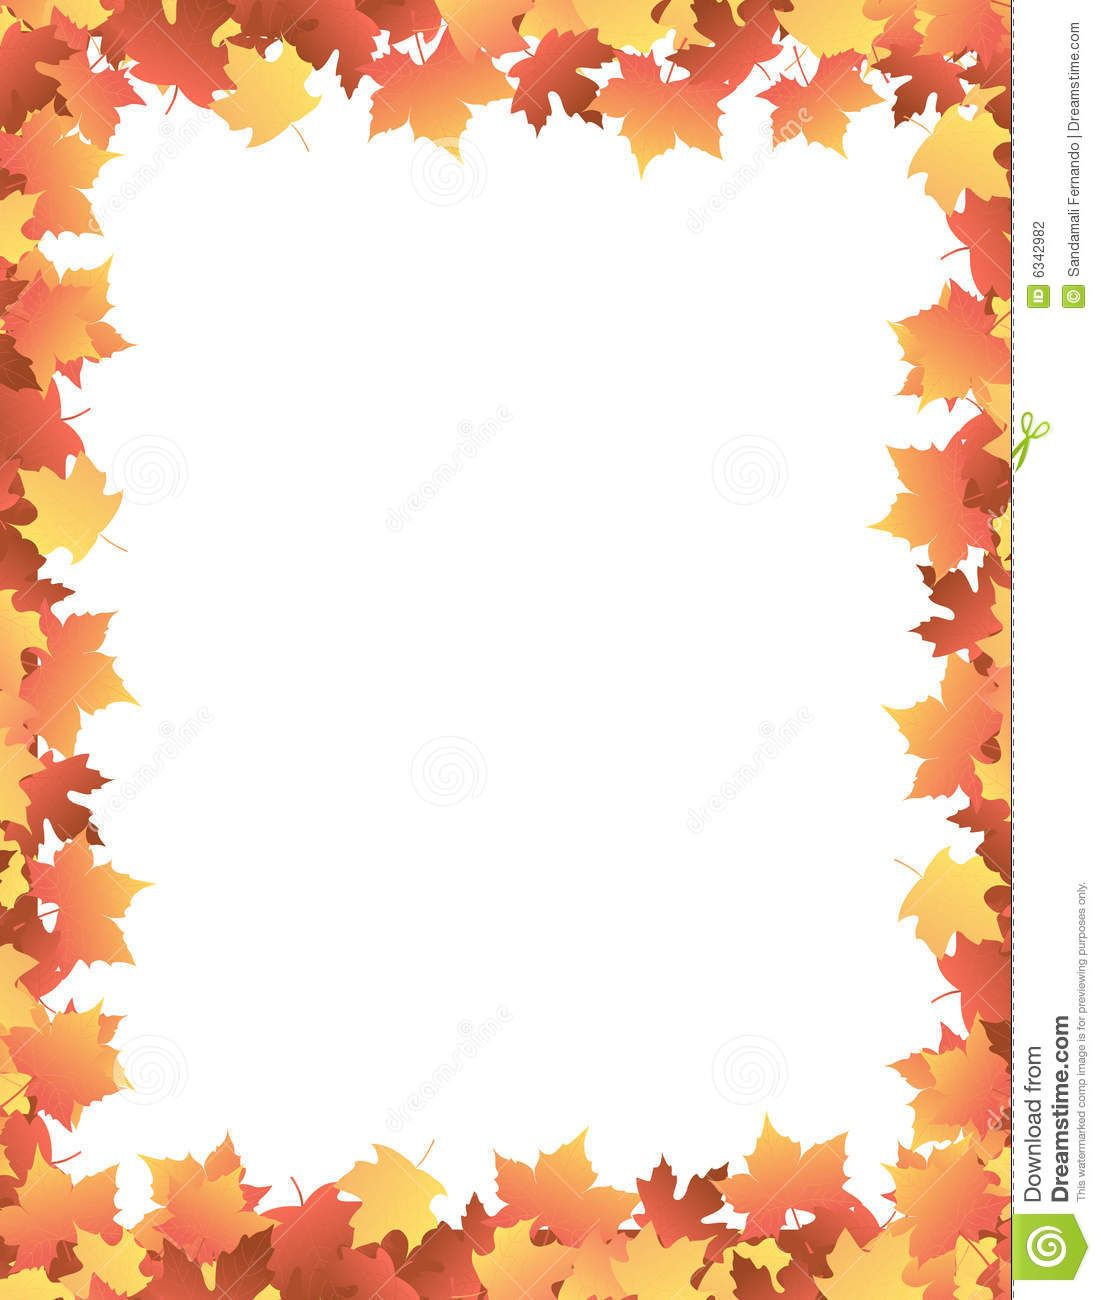 Autumn leaves clipart border royalty free download Fall Leaves Clip Art Border Recipe 101 | Thanksgiving | Leaf border ... royalty free download